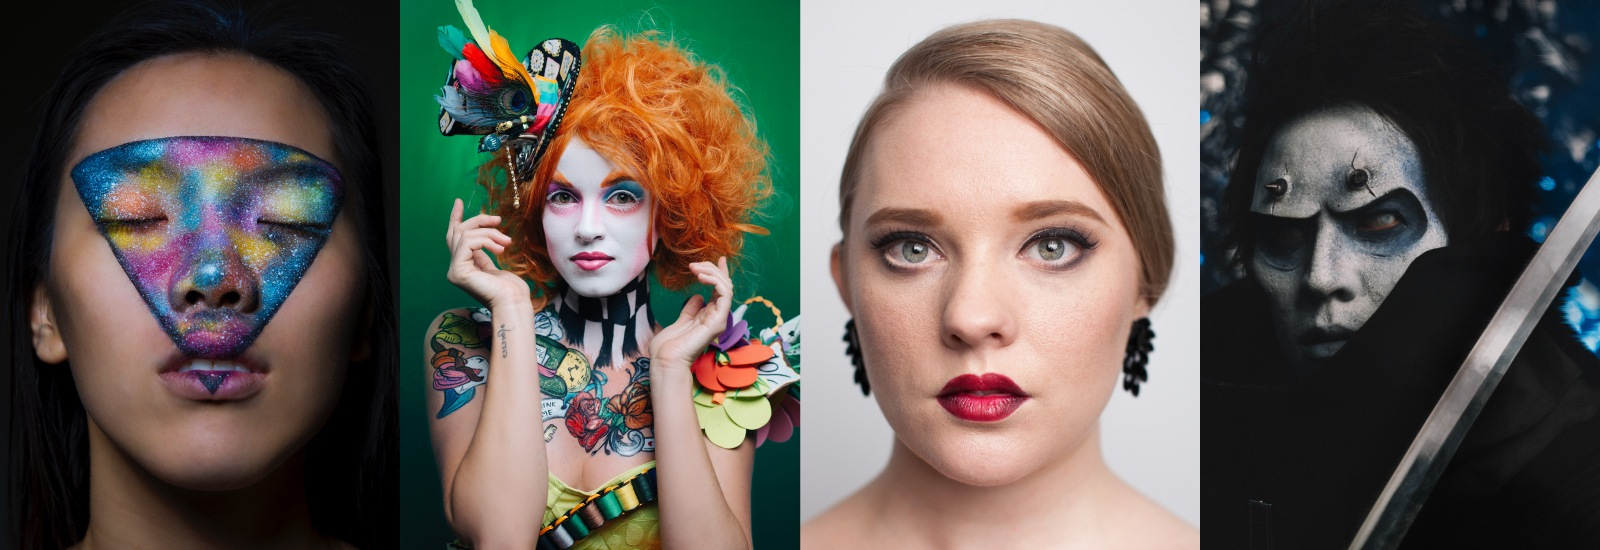 Artists The Agency To Makeup Artists